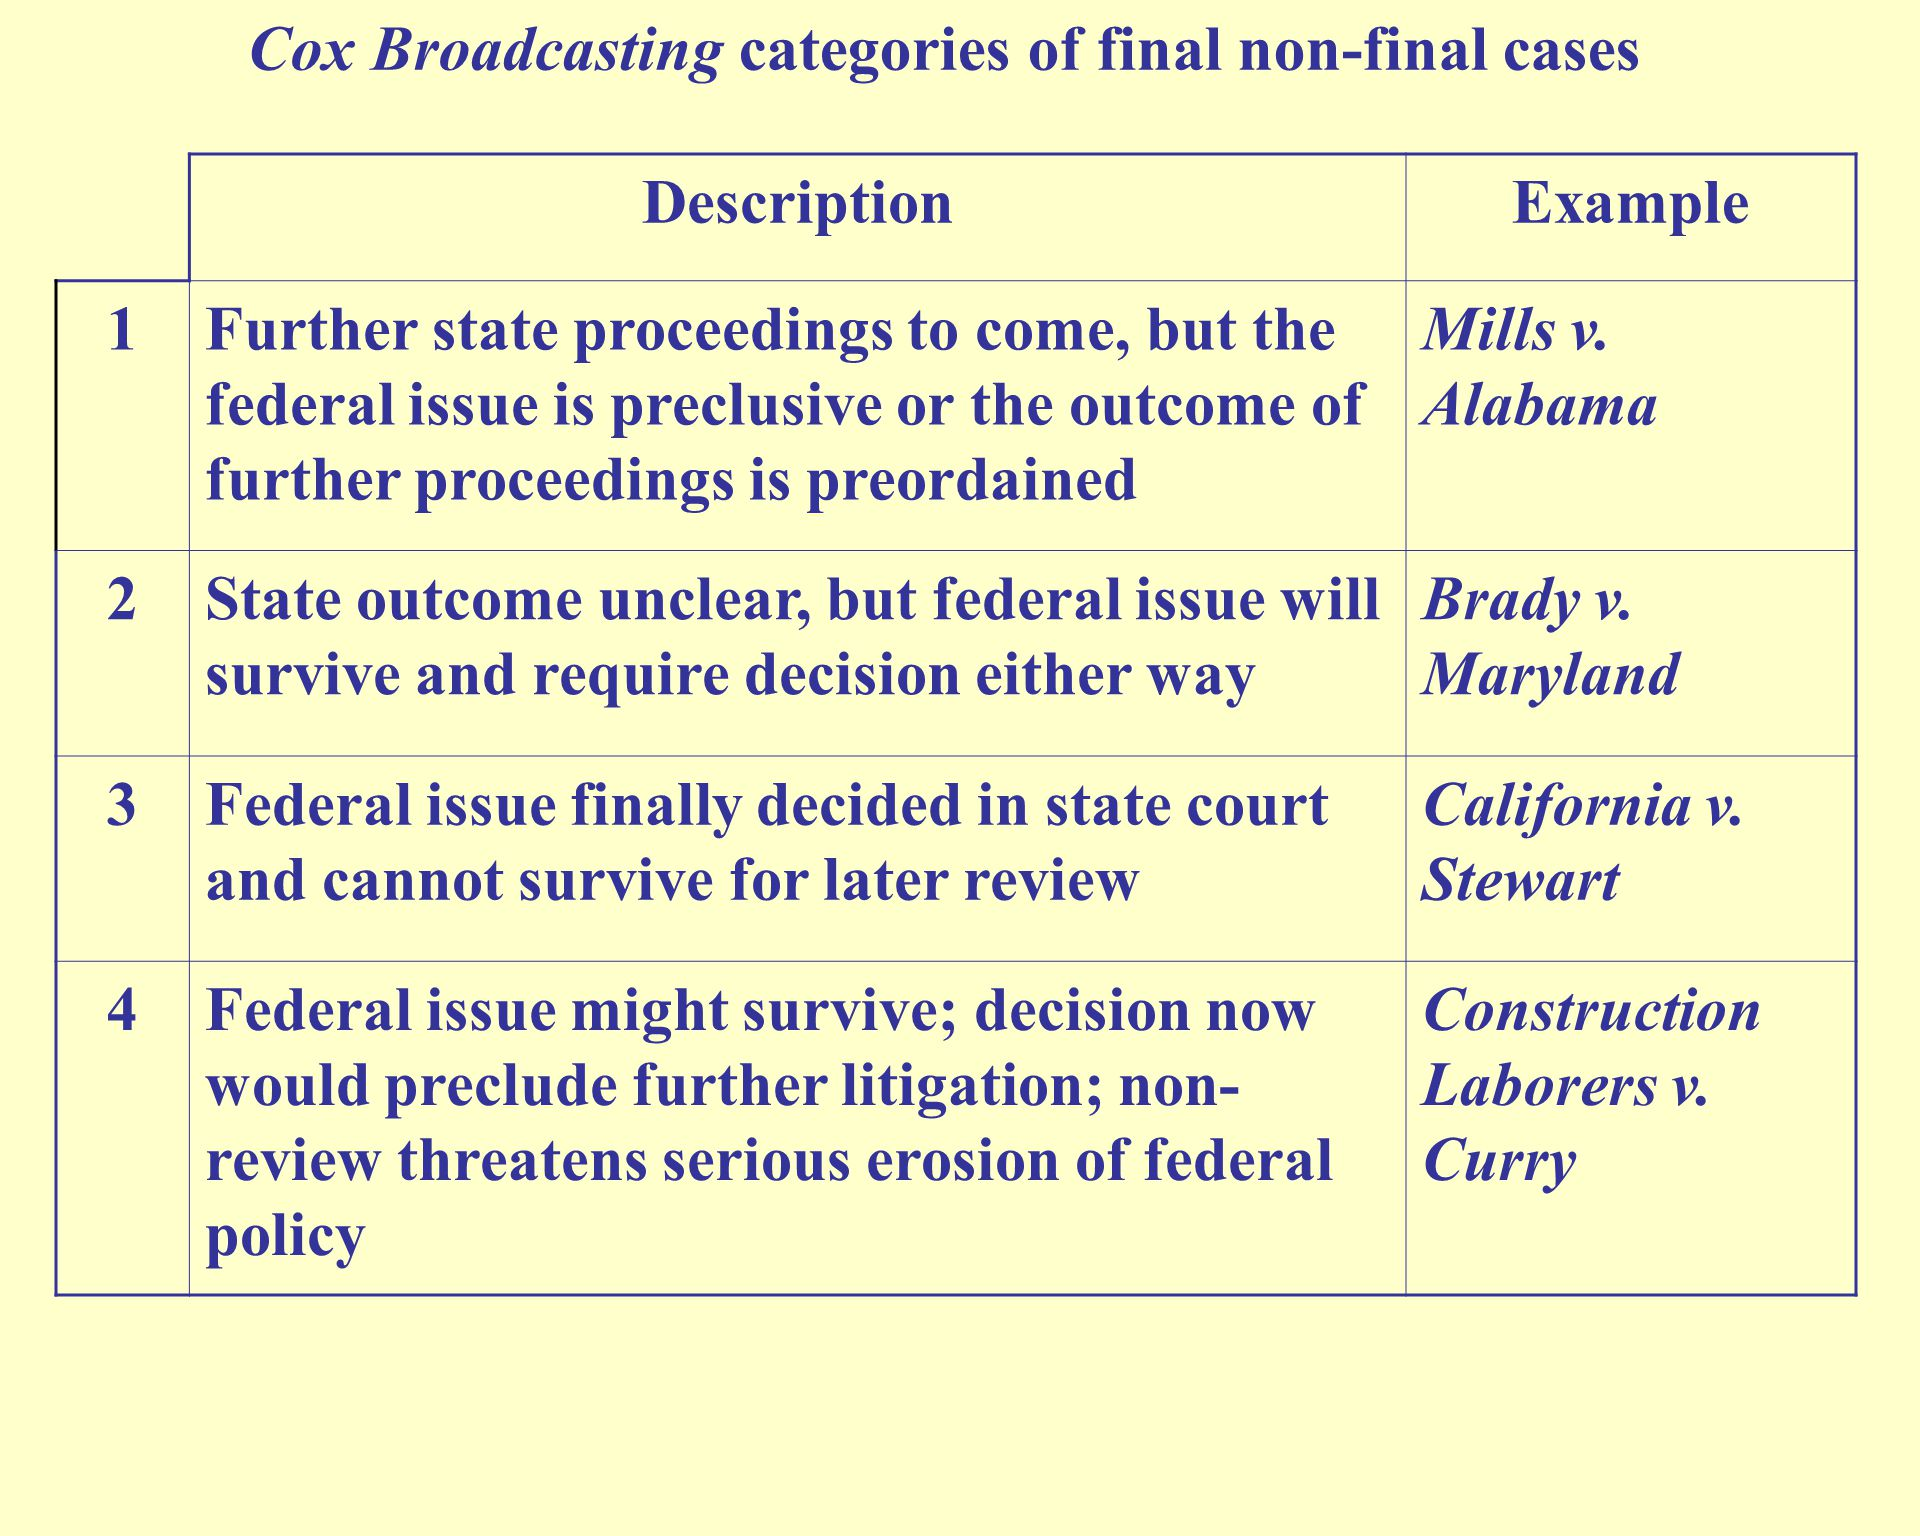 Cox Broadcasting categories of final non-final cases DescriptionExample 1Further state proceedings to come, but the federal issue is preclusive or the outcome of further proceedings is preordained Mills v.